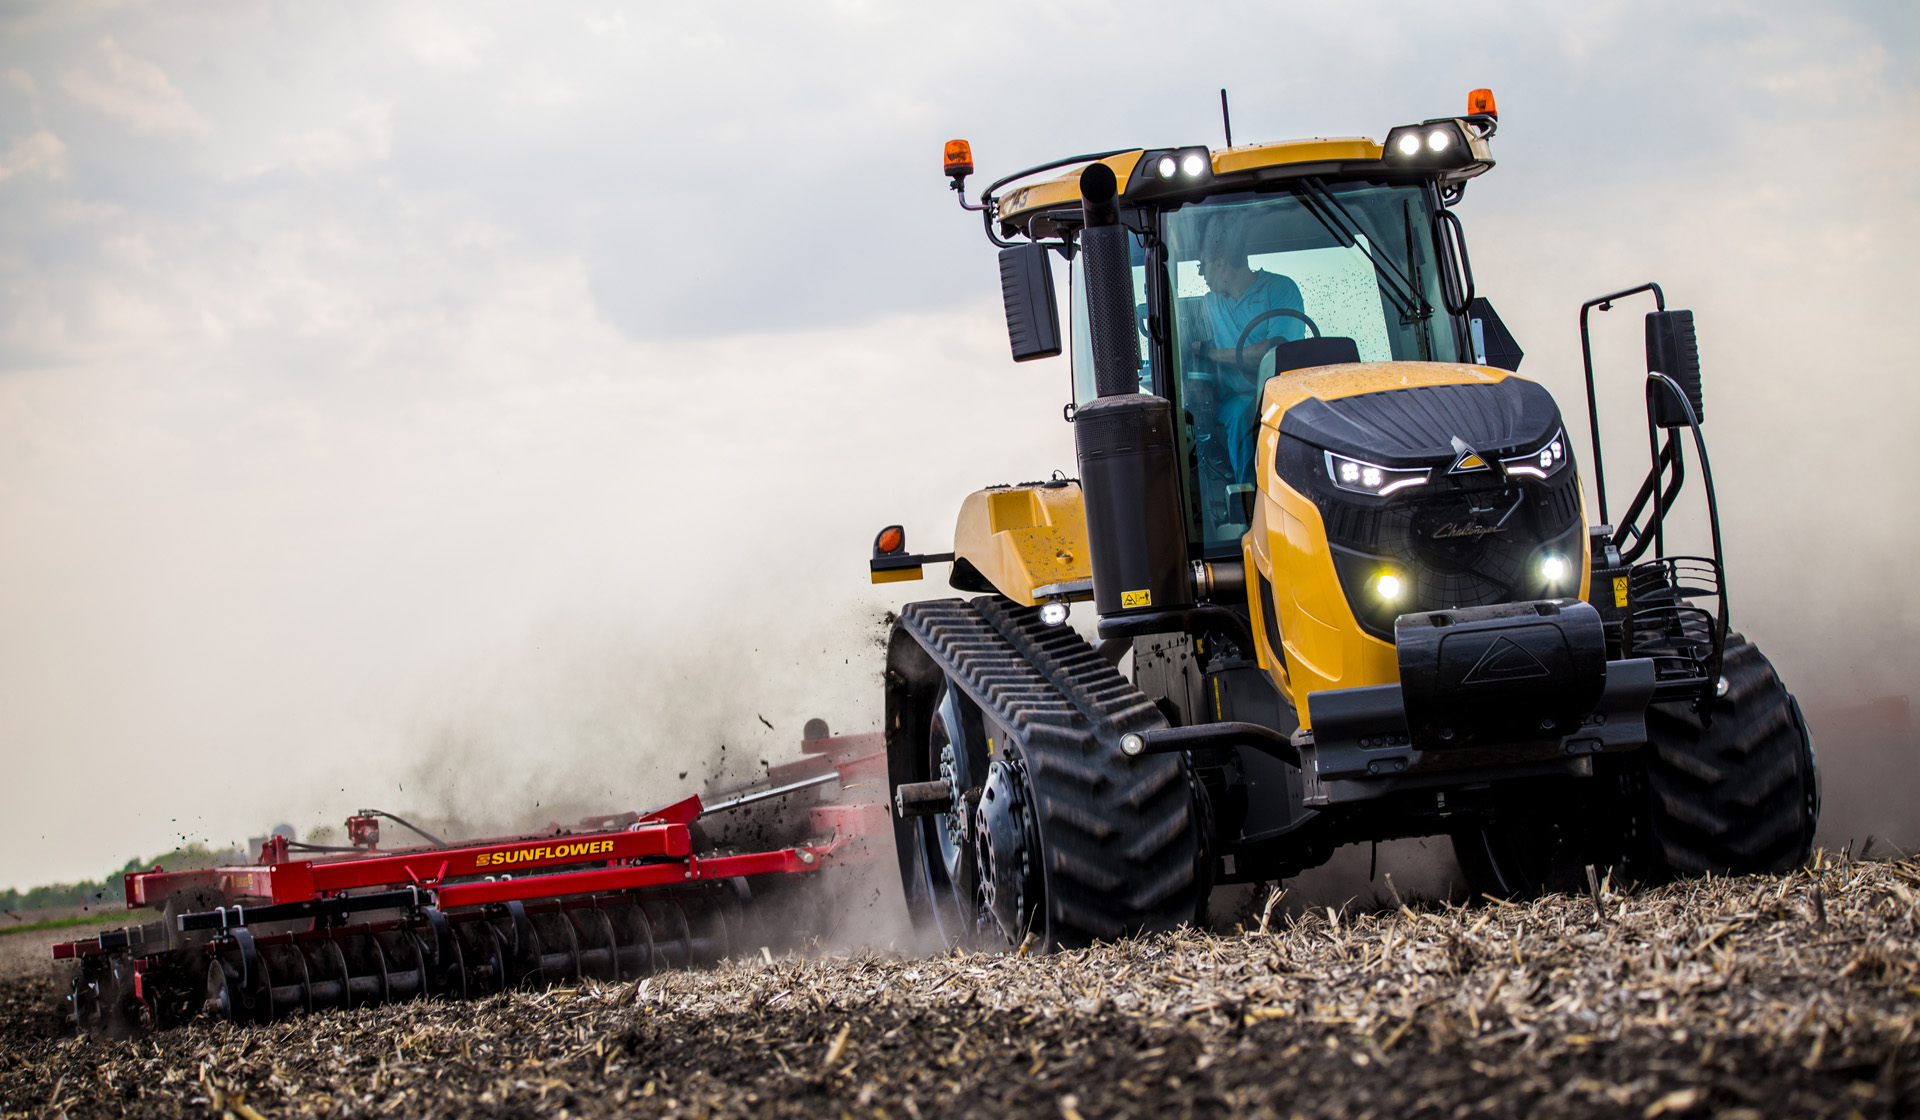 The new Challenger MT700 track tractor is shown pulling a tiller over farmland.